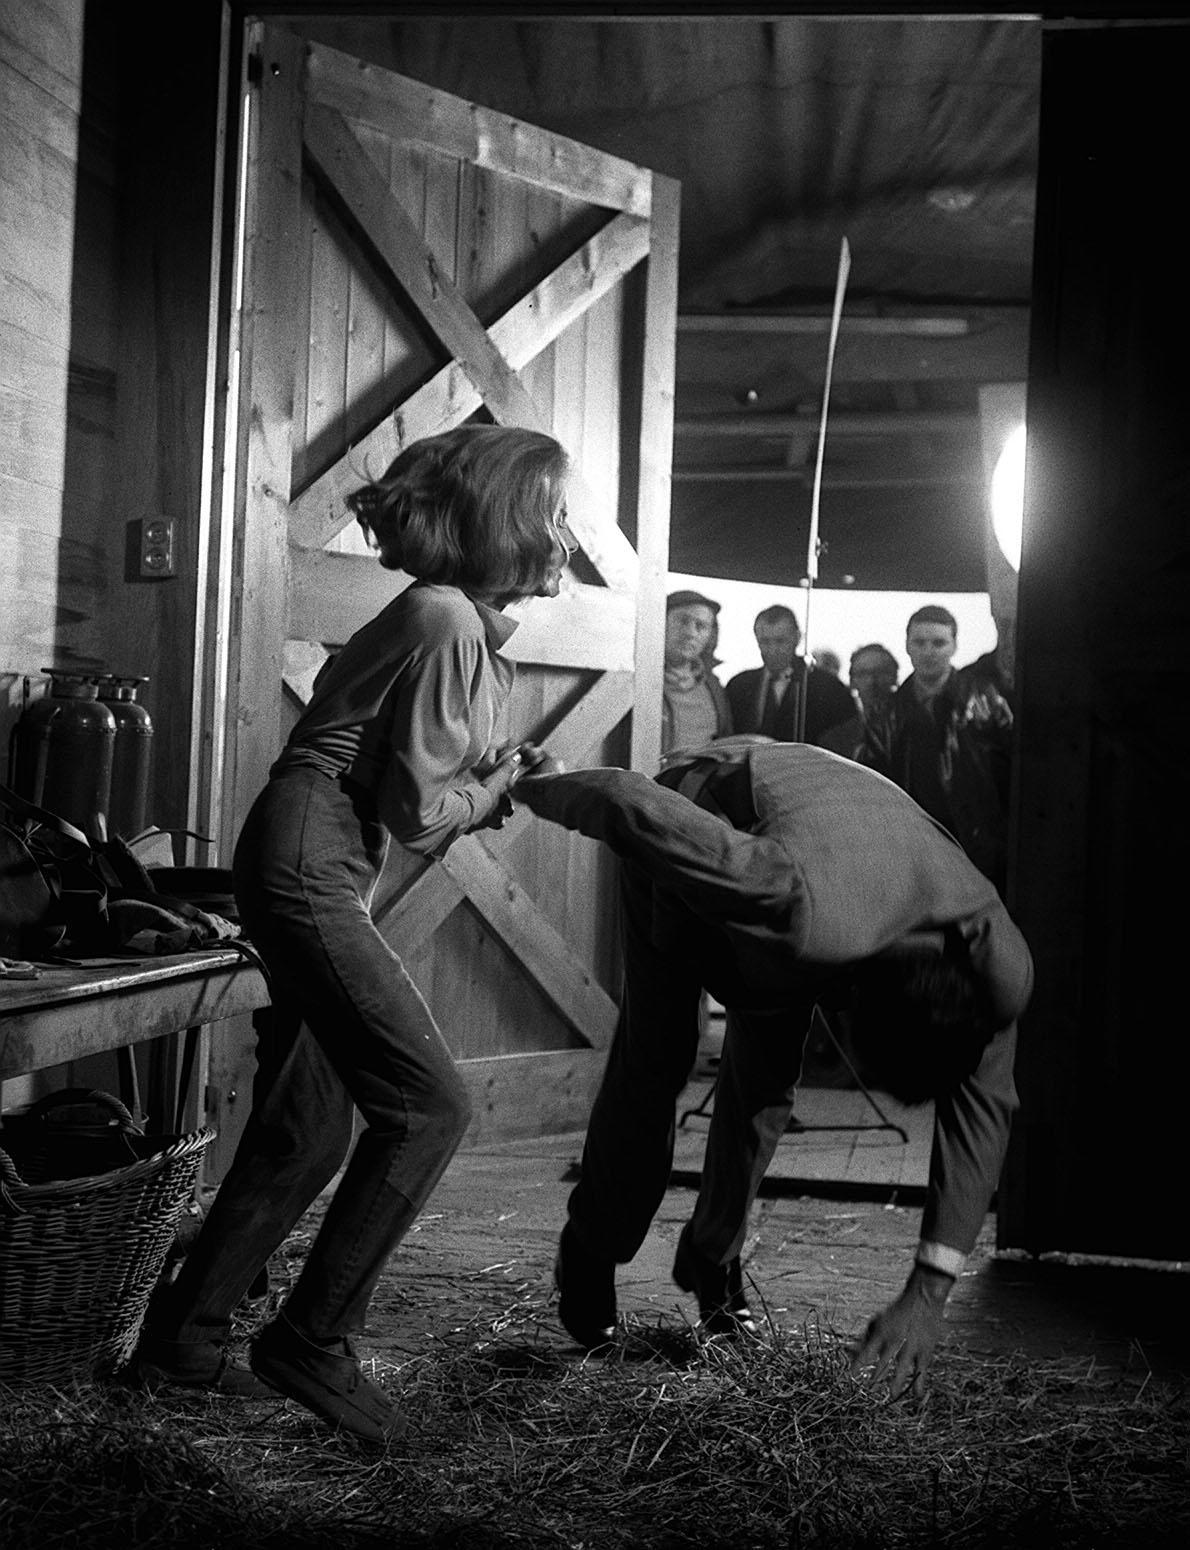 During filming of the third Bond film 'Goldfinger' at Pinewood Studios, James Bond (Sean Connery) is thrown by Pussy Galore (Honor Blackman) before romance takes over in the hayloft.